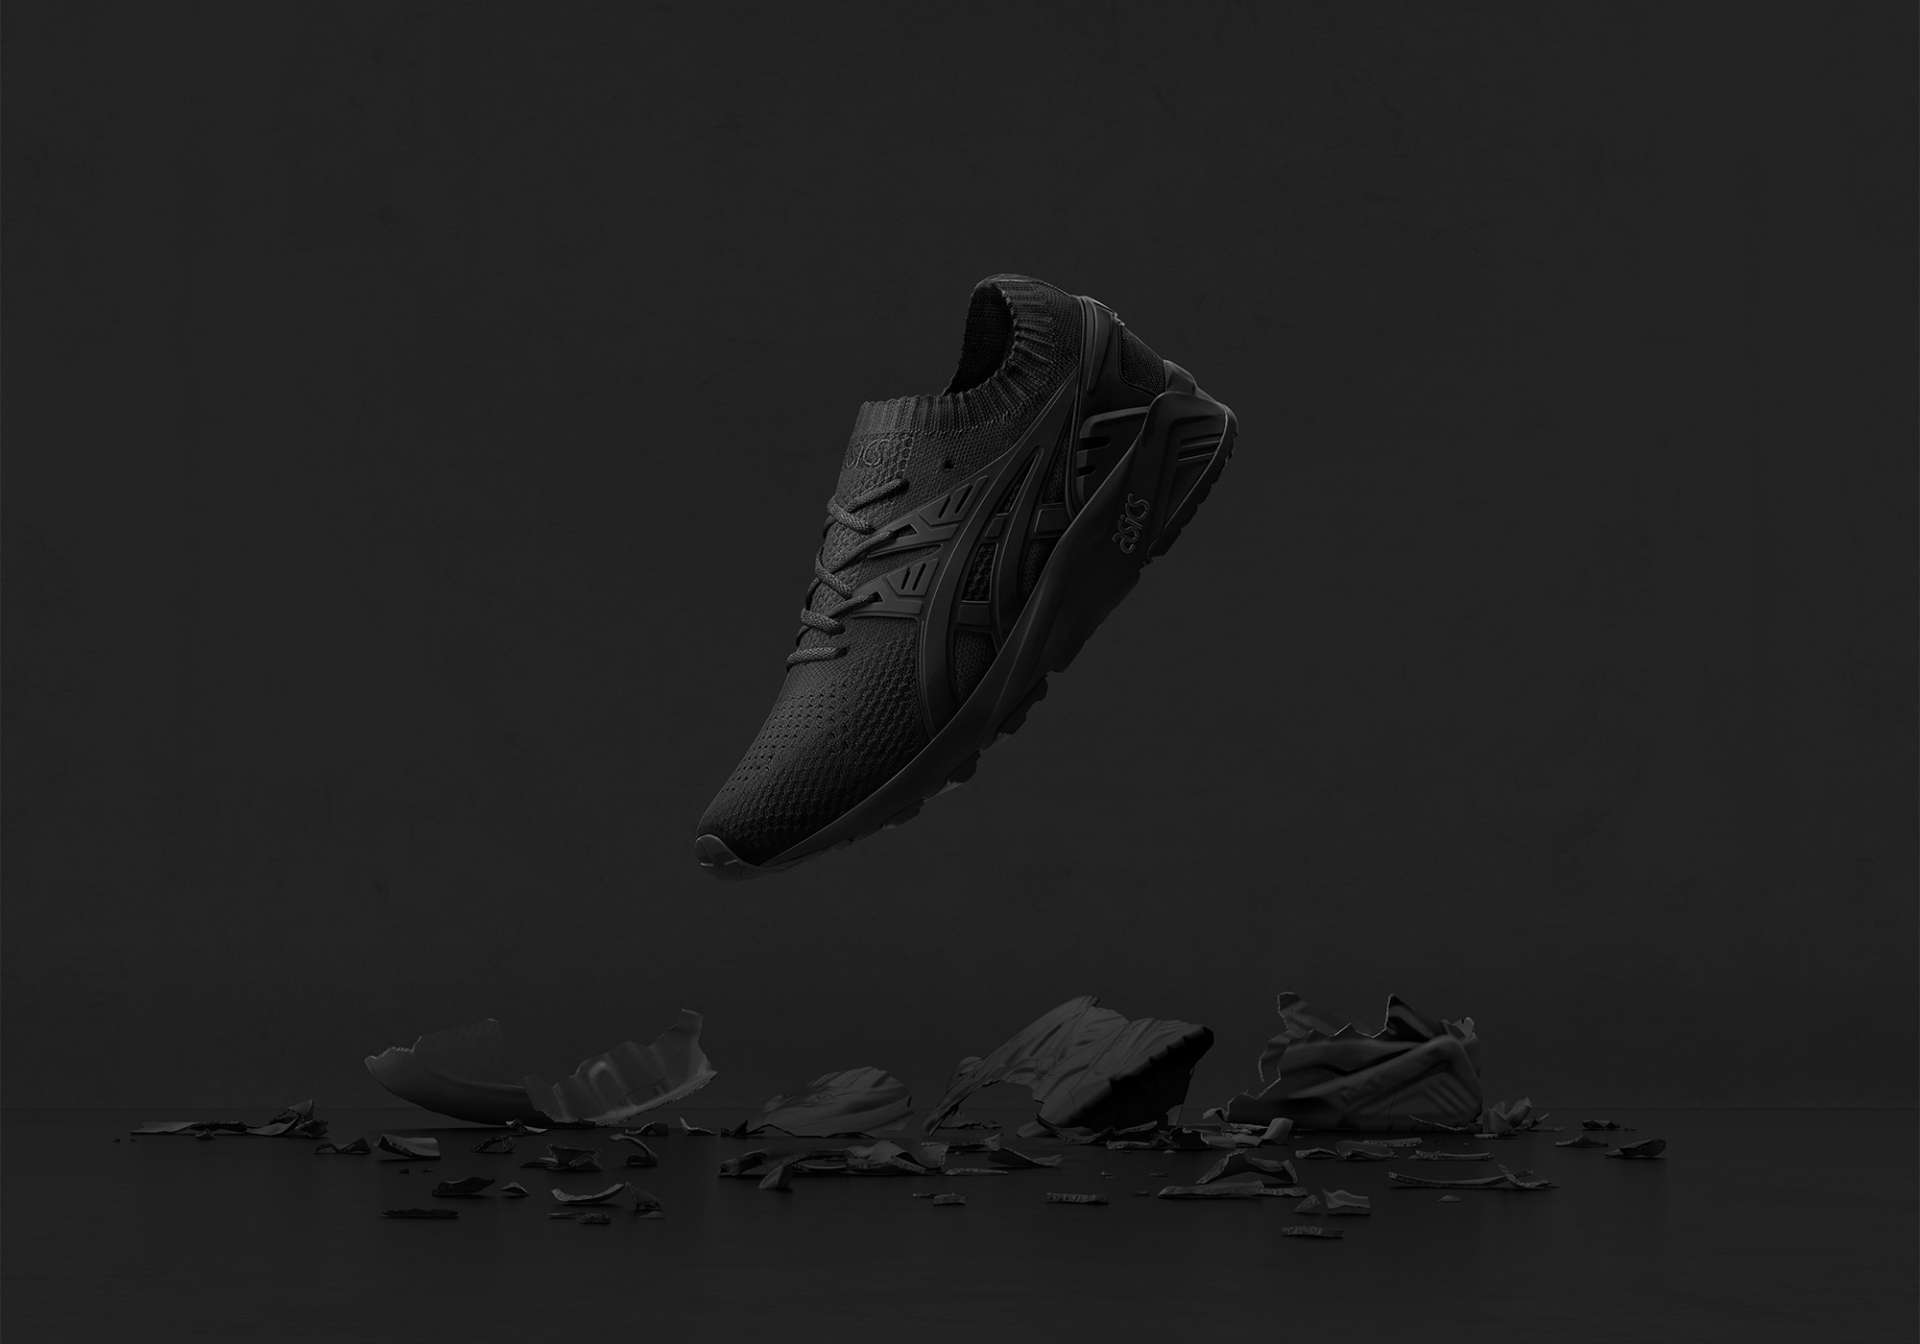 ASICS: Rebirth of an Icon